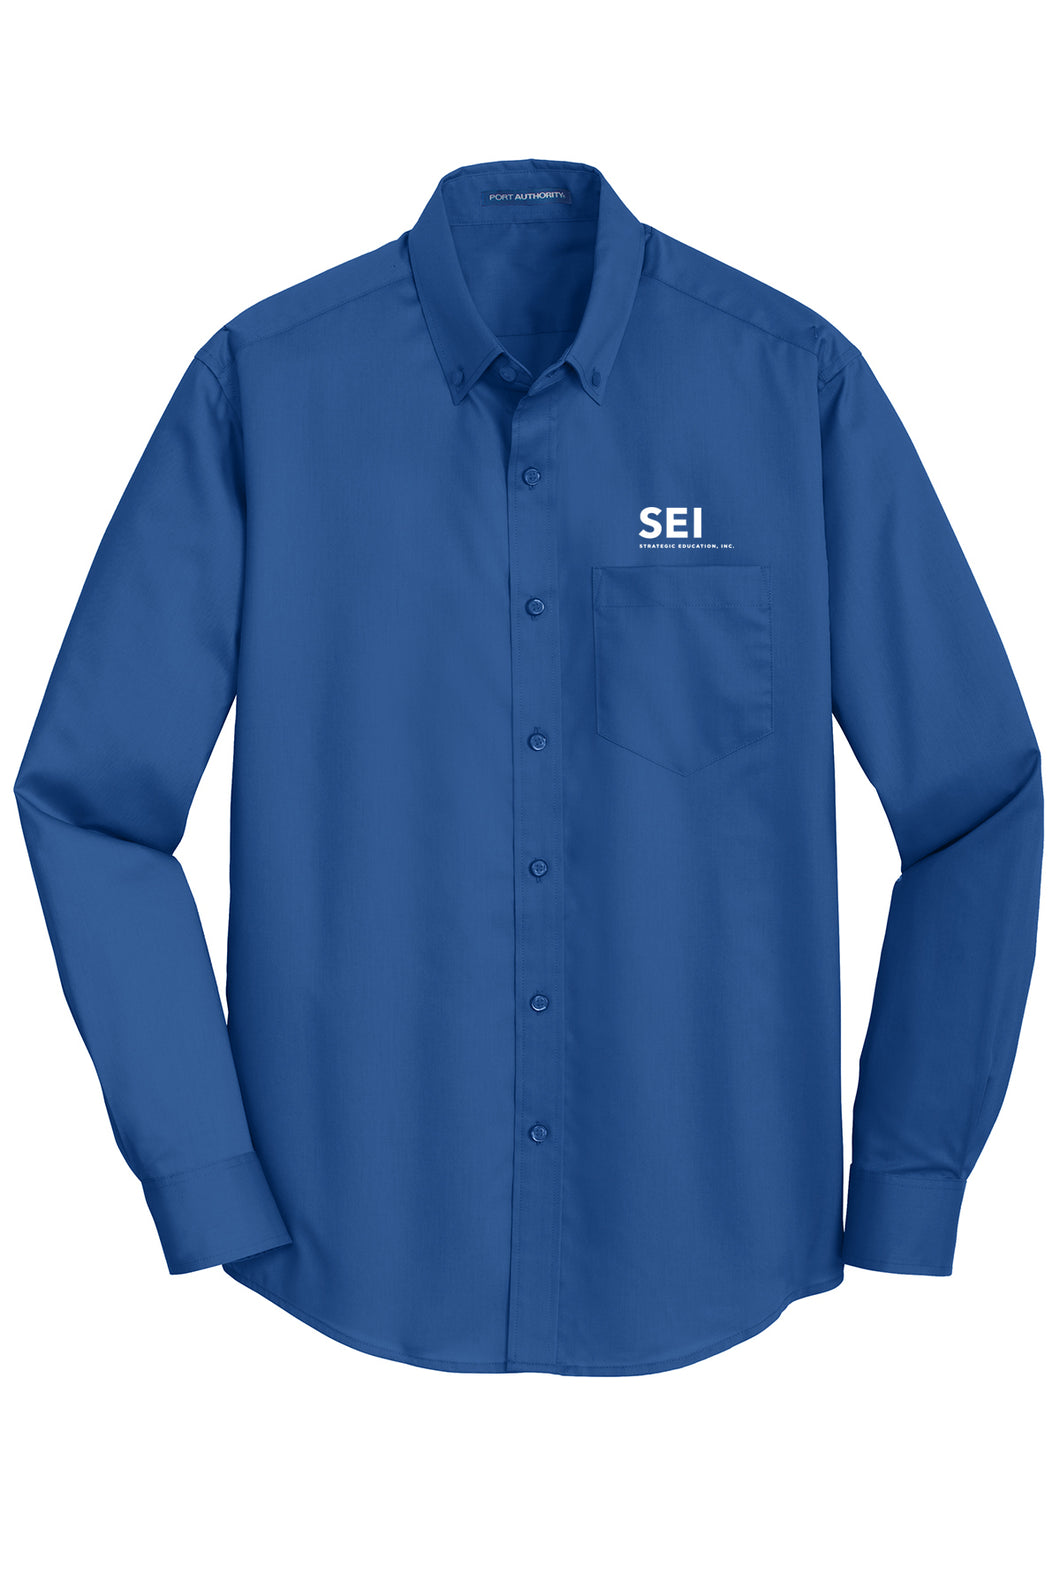 SEI - Port Authority SuperPro Twill Shirt - True Blue